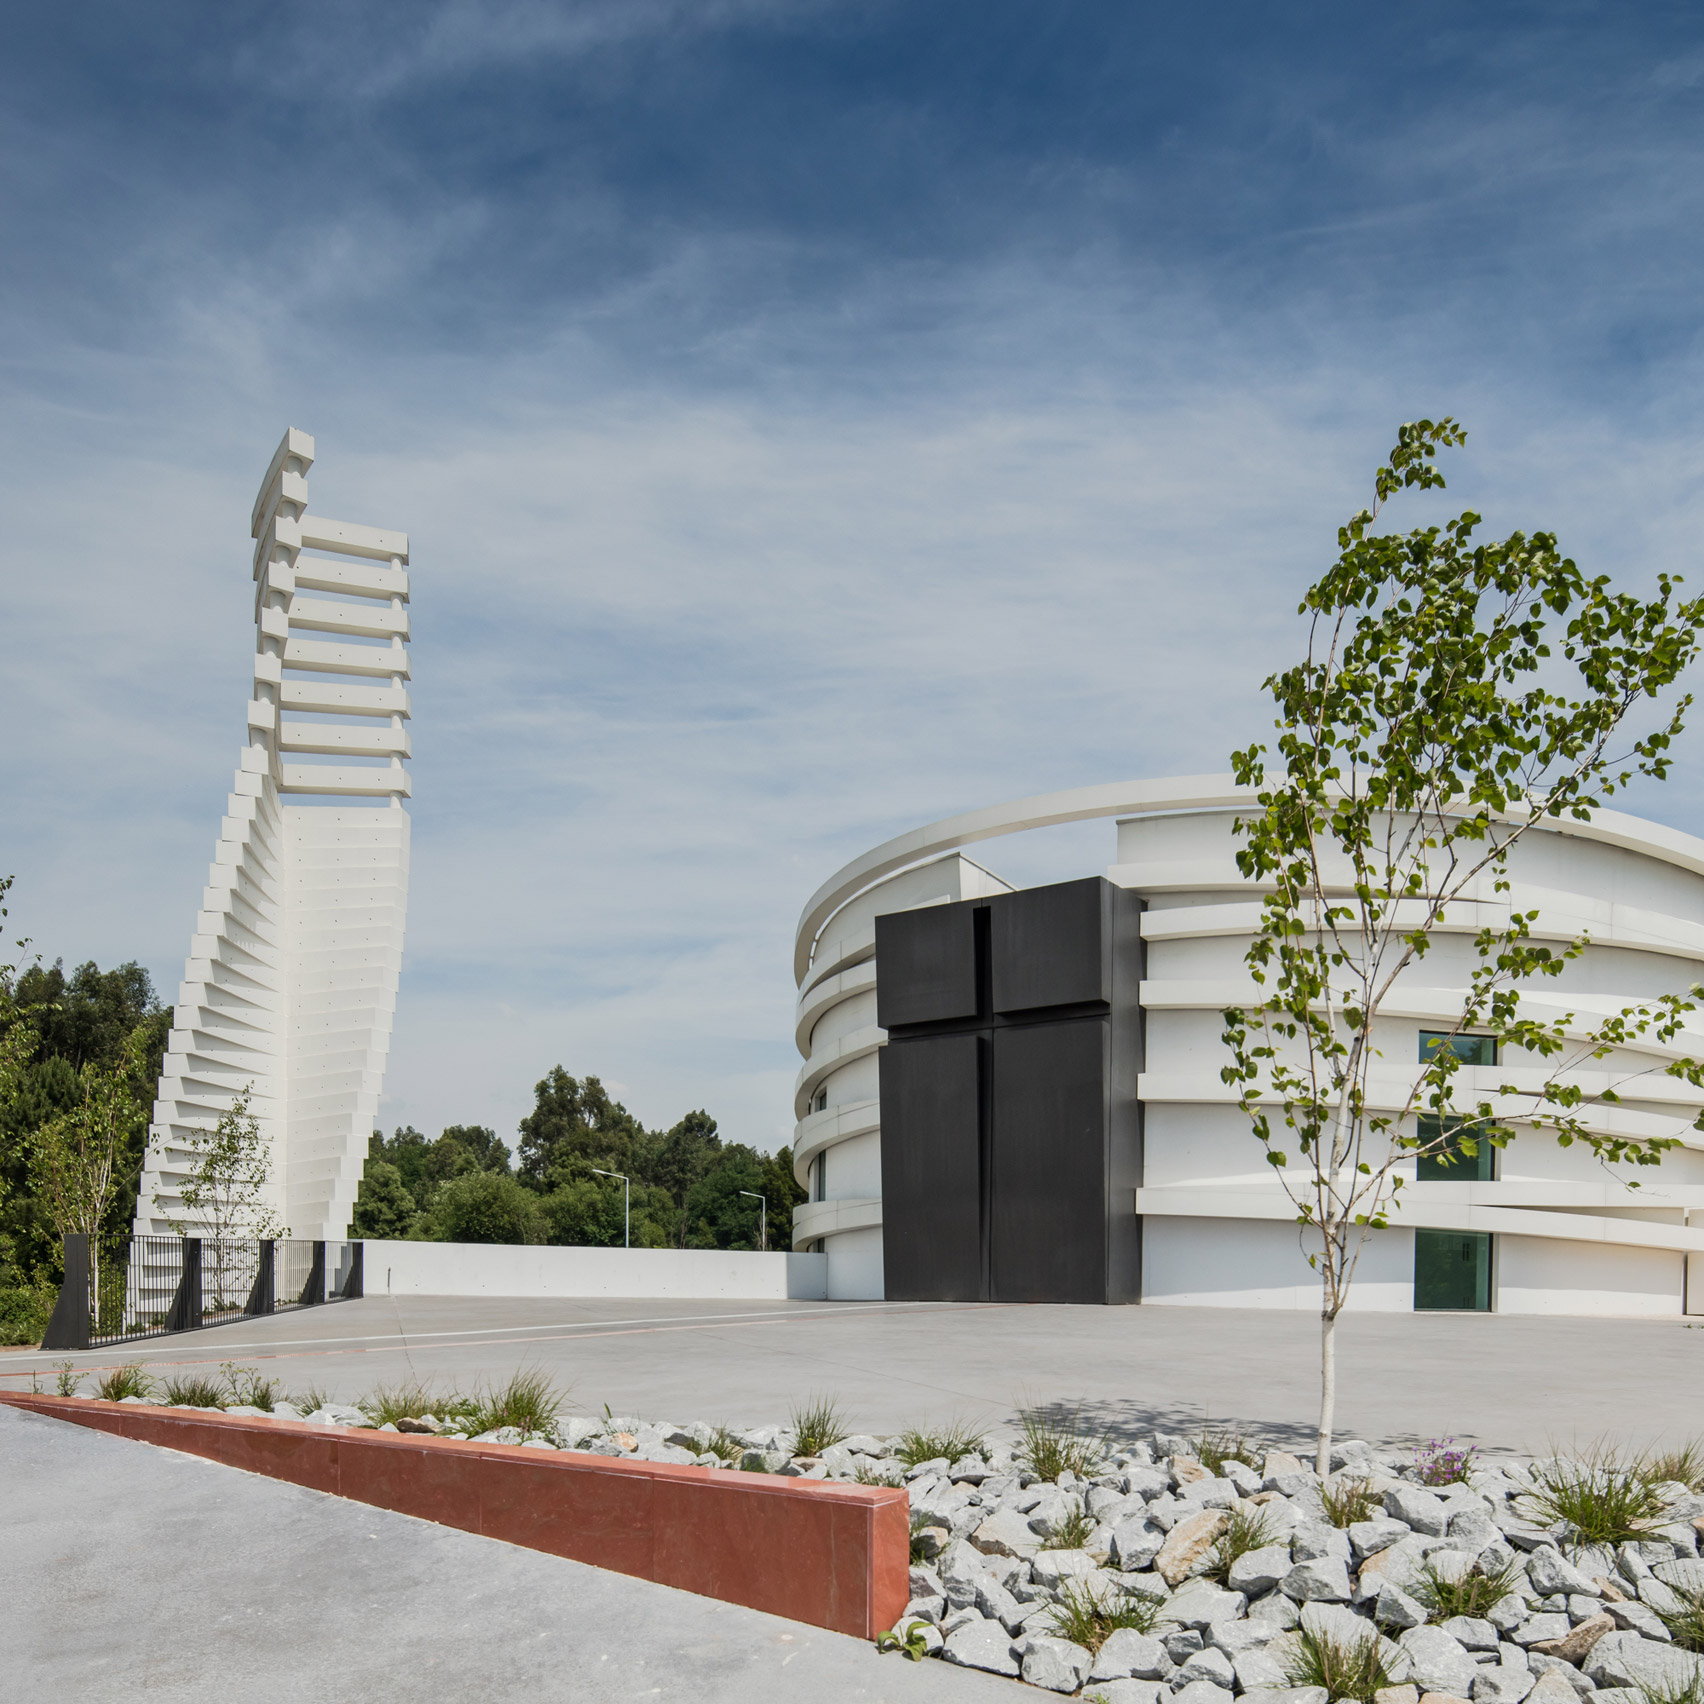 Hugo Correia creates elliptical concrete church in Portugal